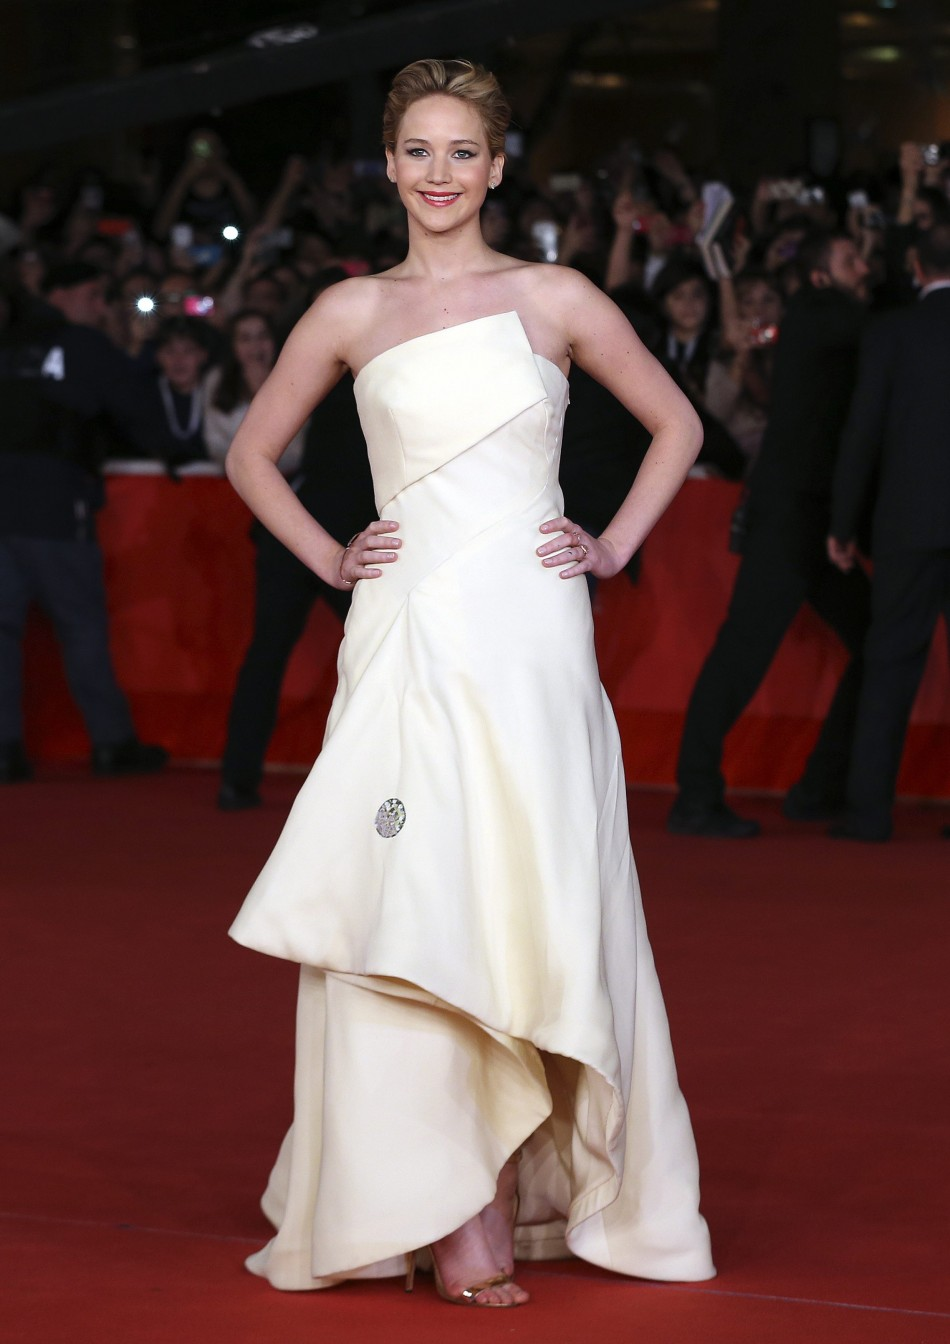 Cast Member Jennifer Lawrence Arrive for the Screening of the Movie 'The Hunger Games: Catching Fire' at the Rome Film Festival